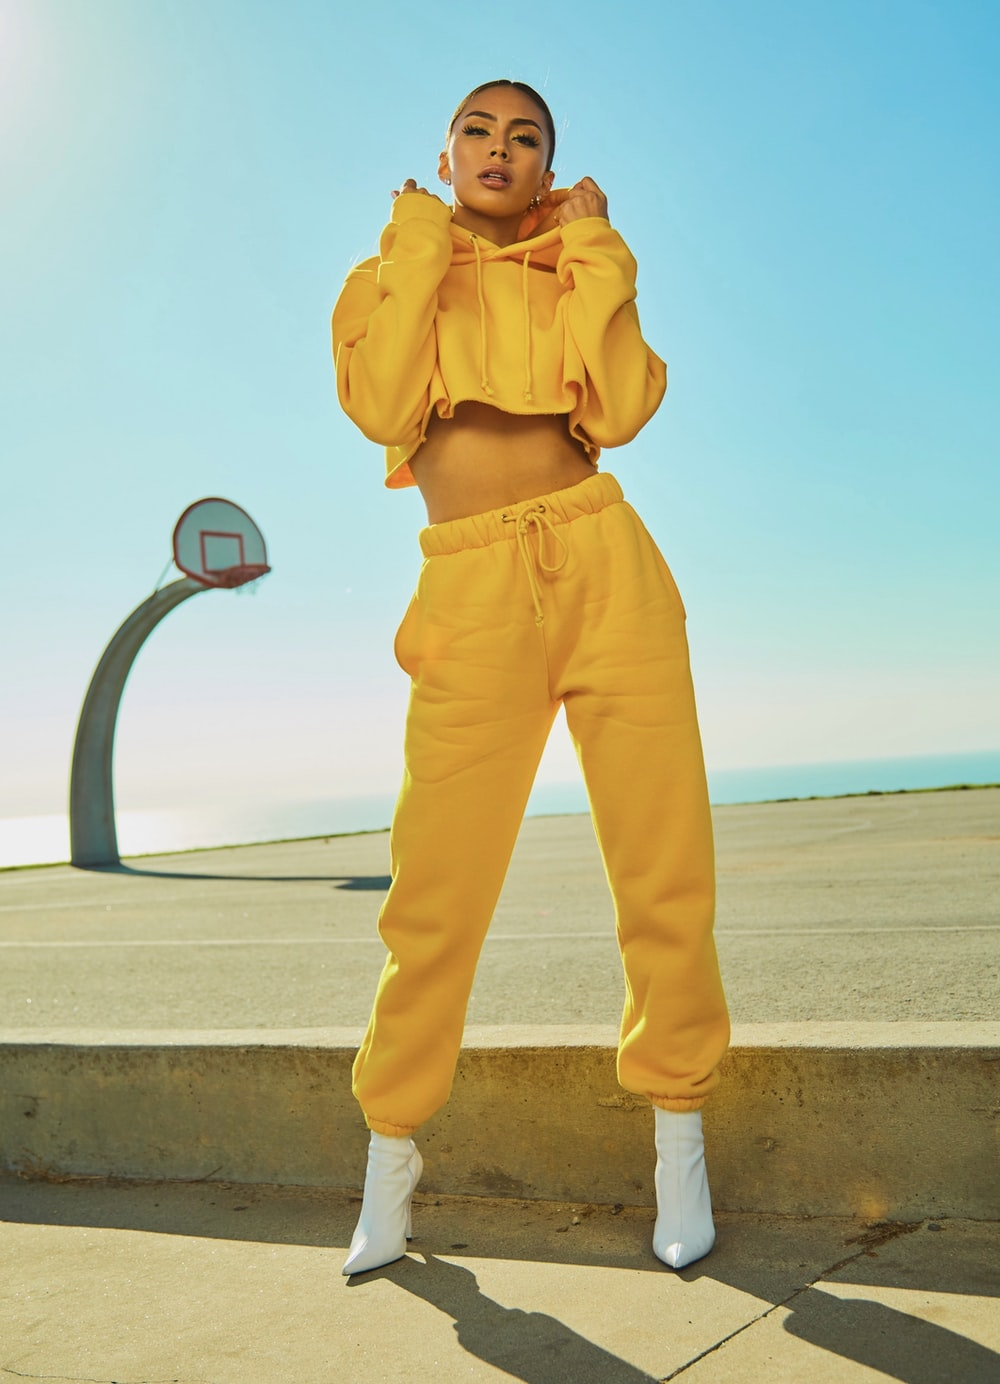 woman in yellow tracksuit standing on basketball court side